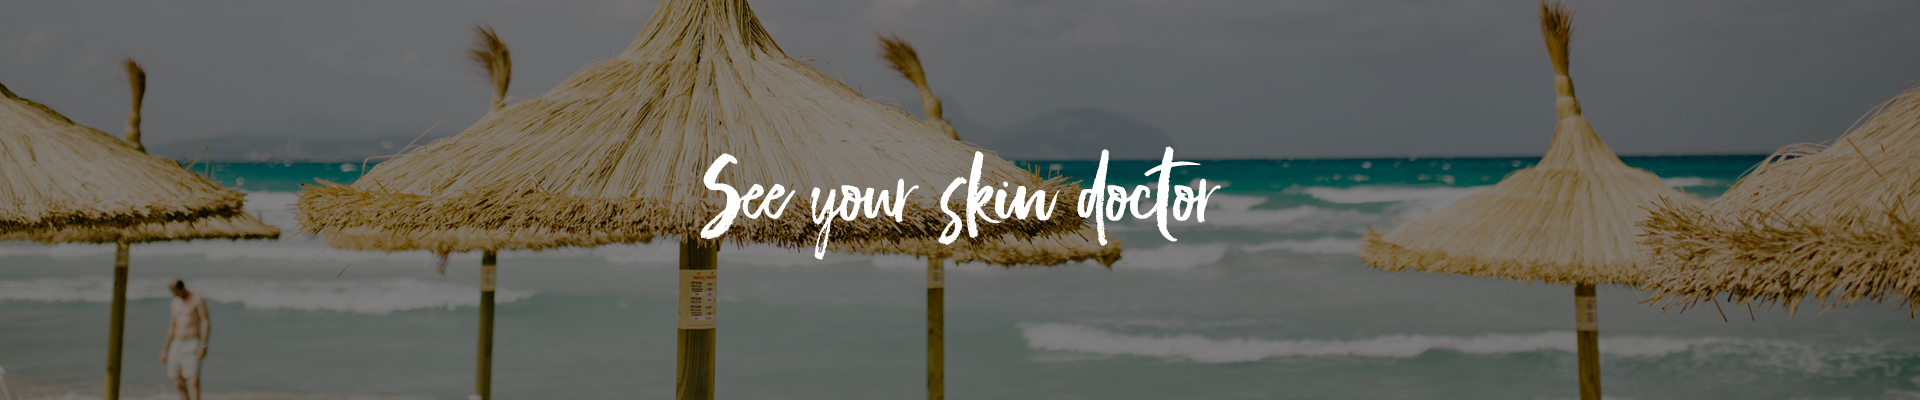 Beauty: 5 tips for healthy skin in summer - sun protection | you rock my life